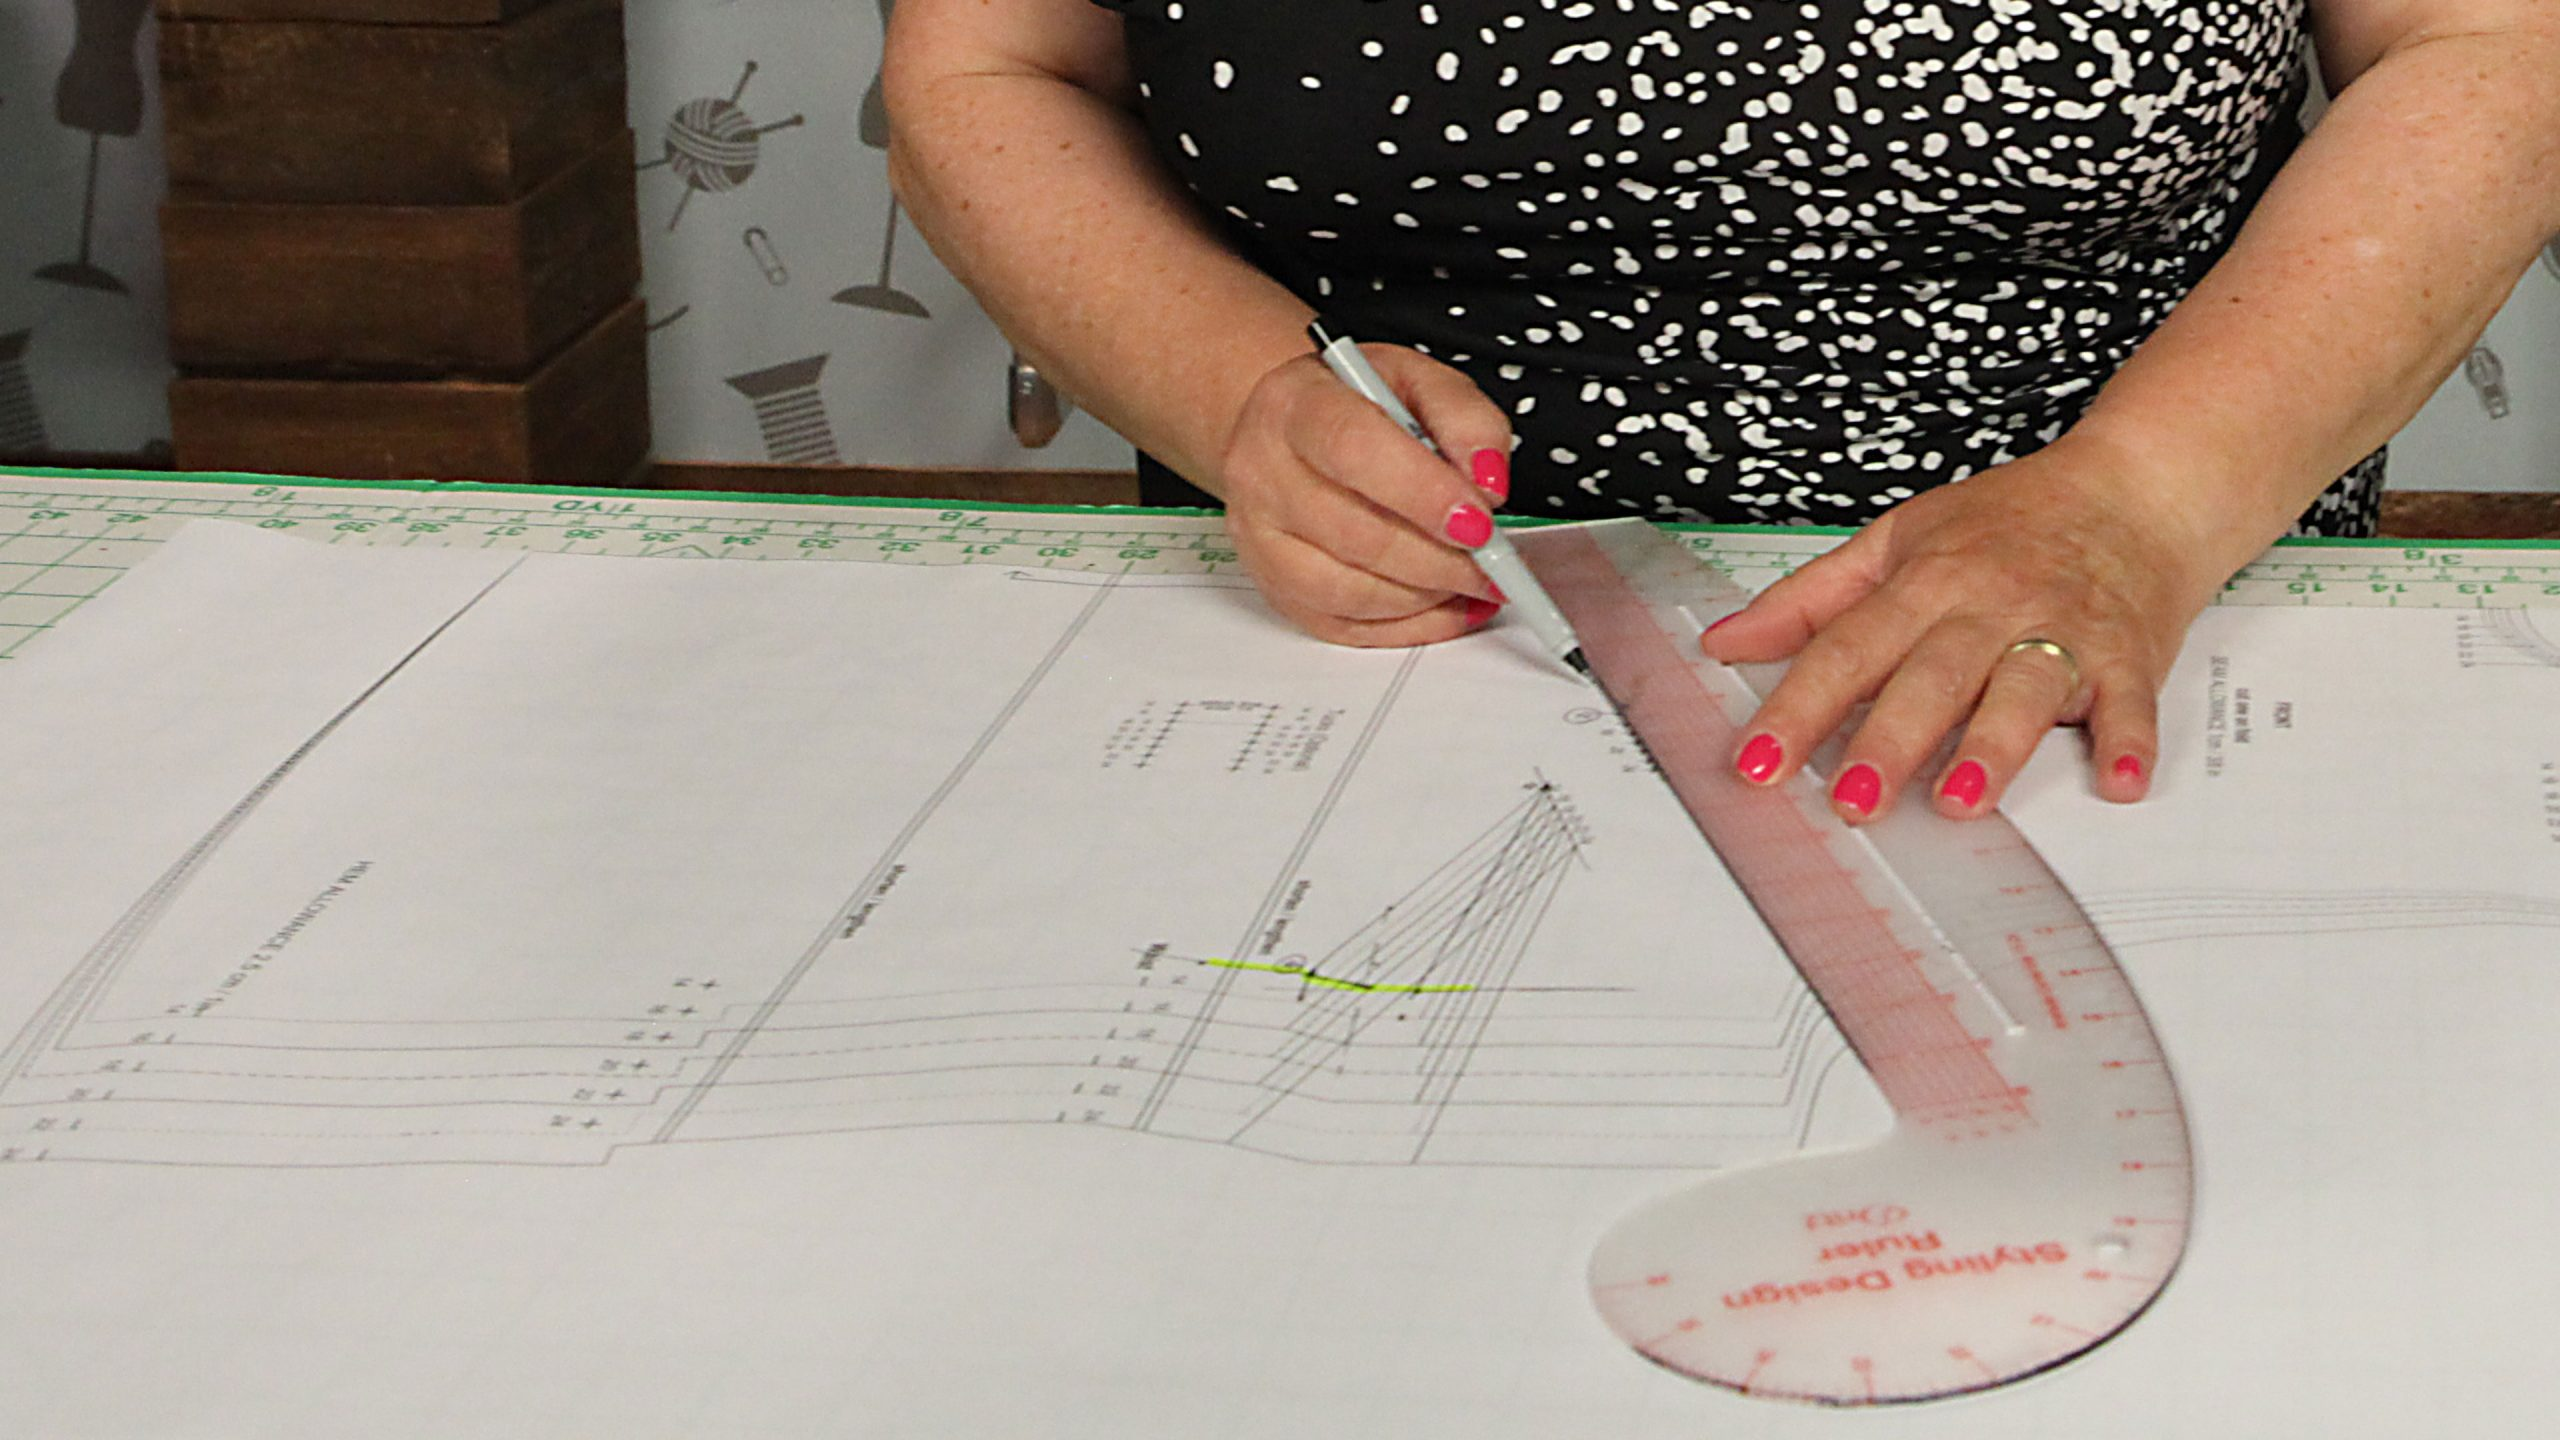 Women using curved ruler